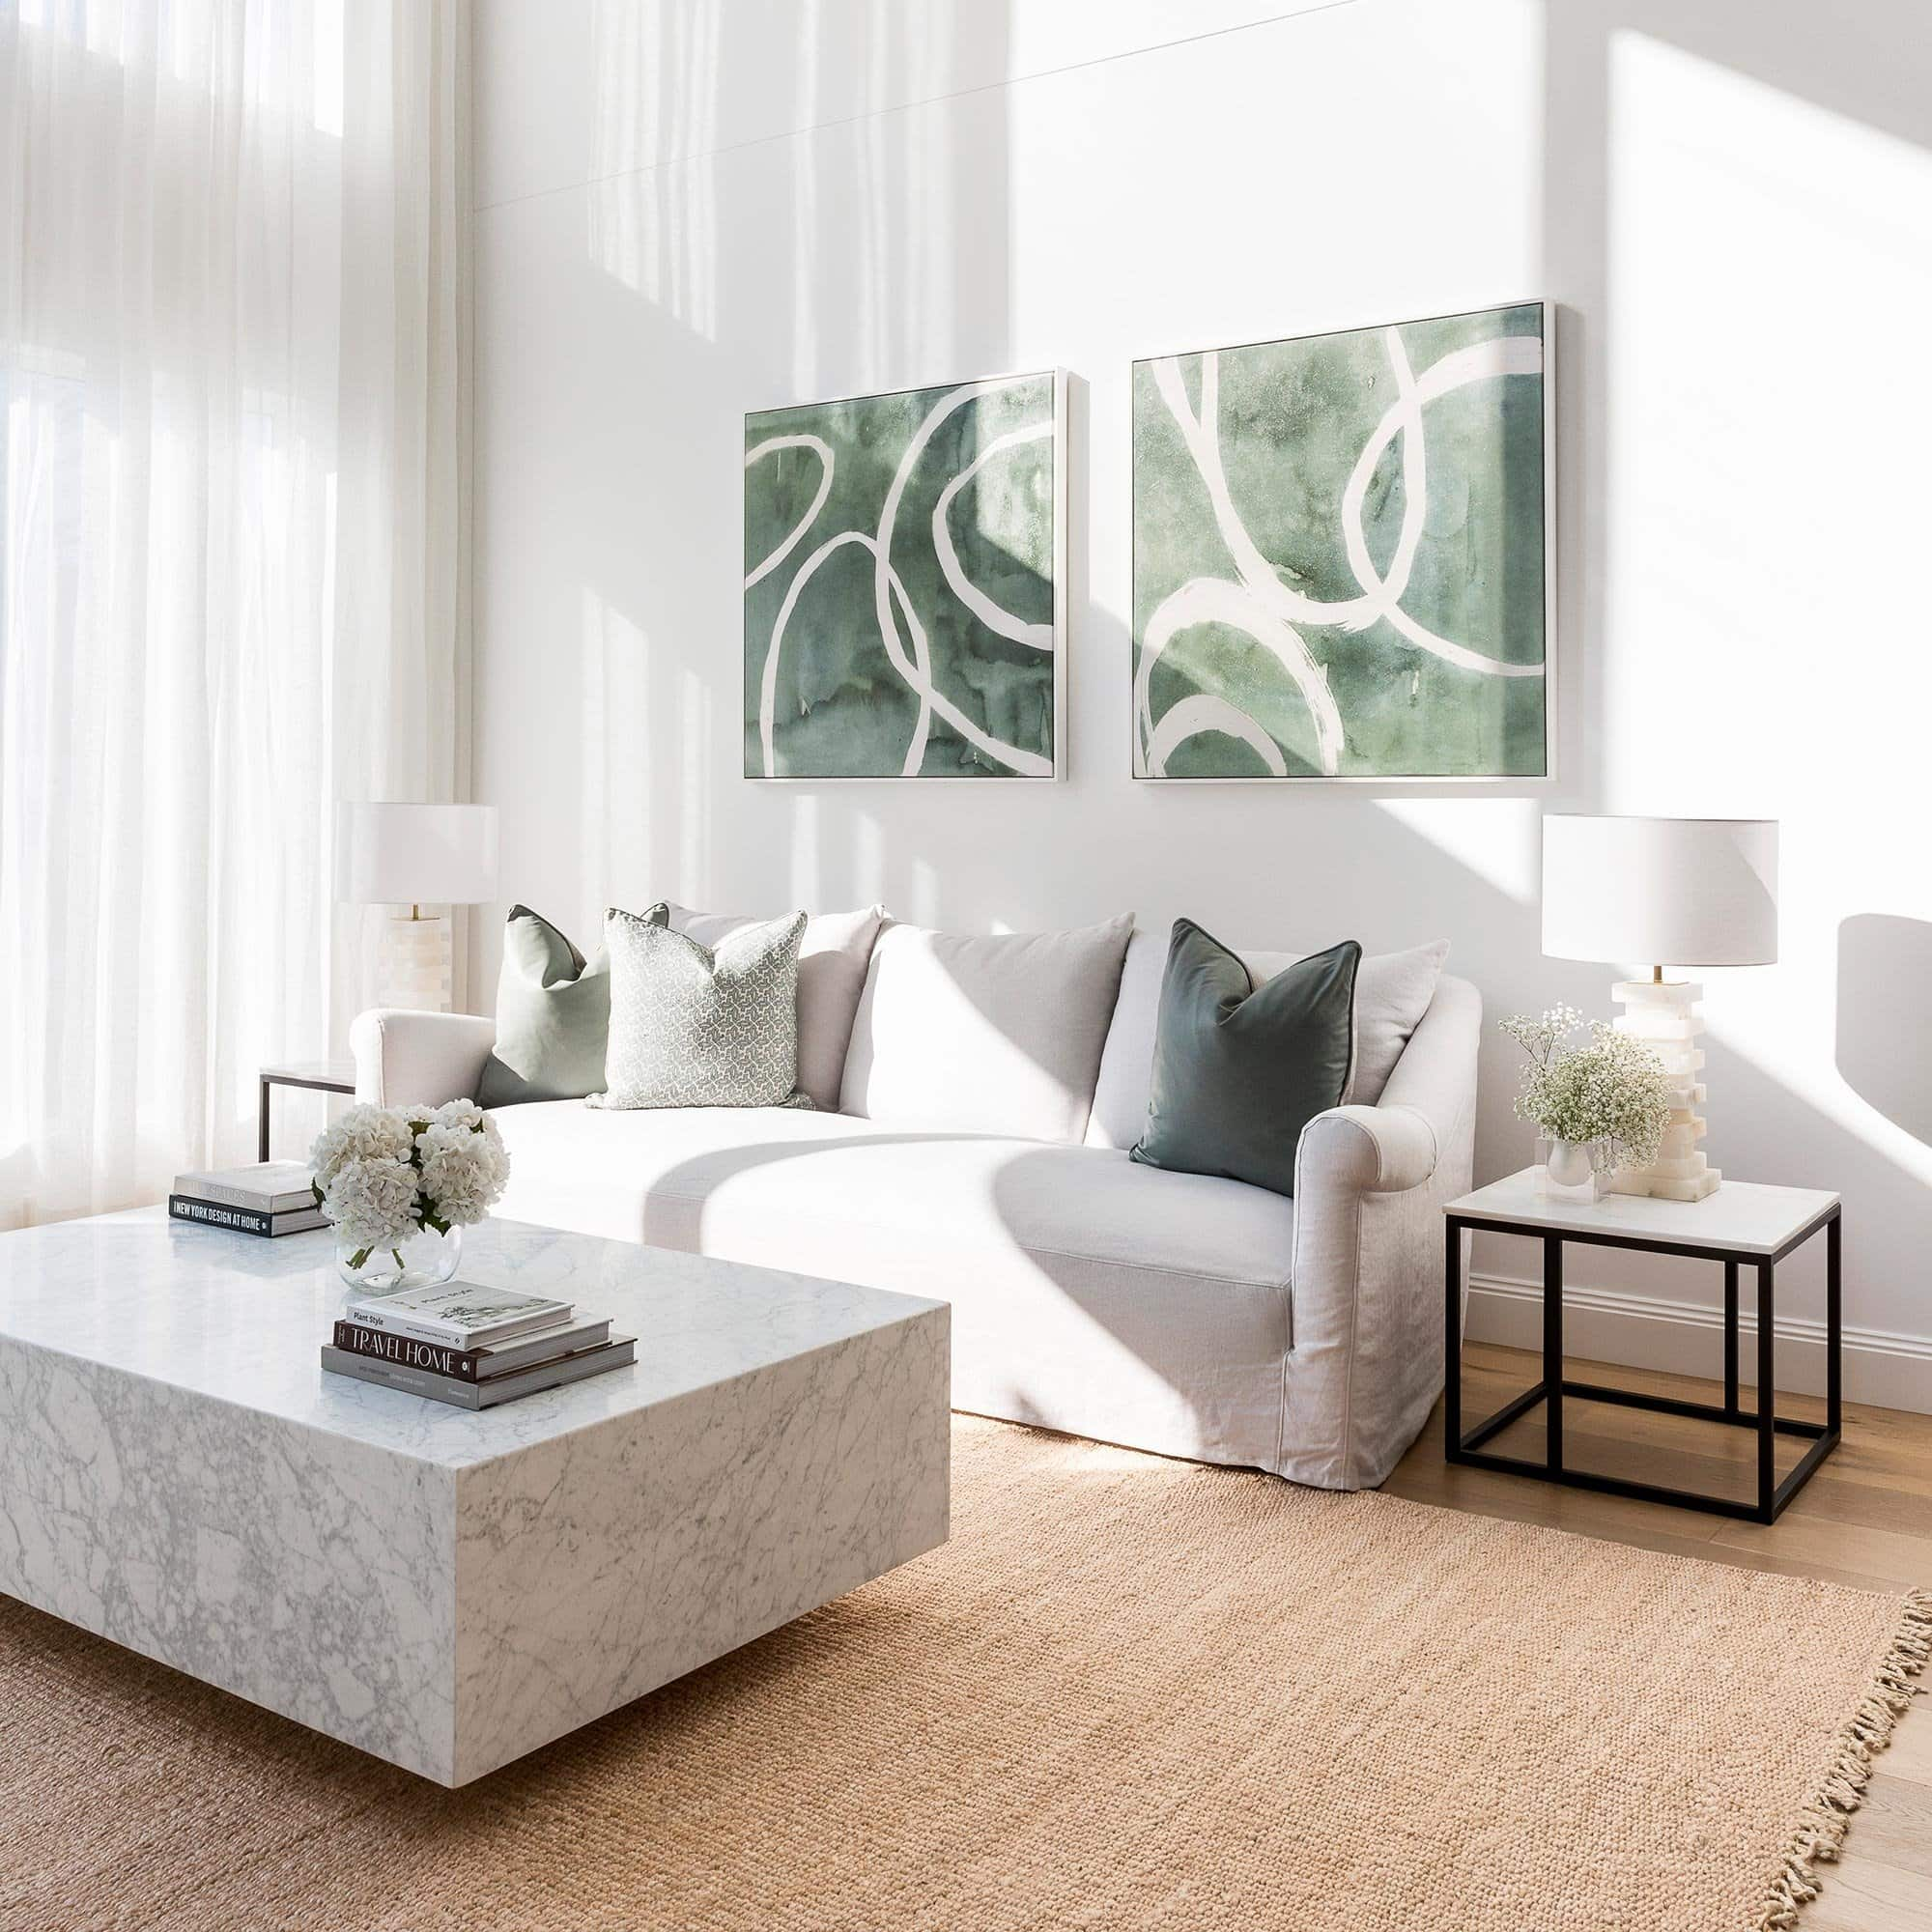 sitchu square marble block coffee table in luxe living room